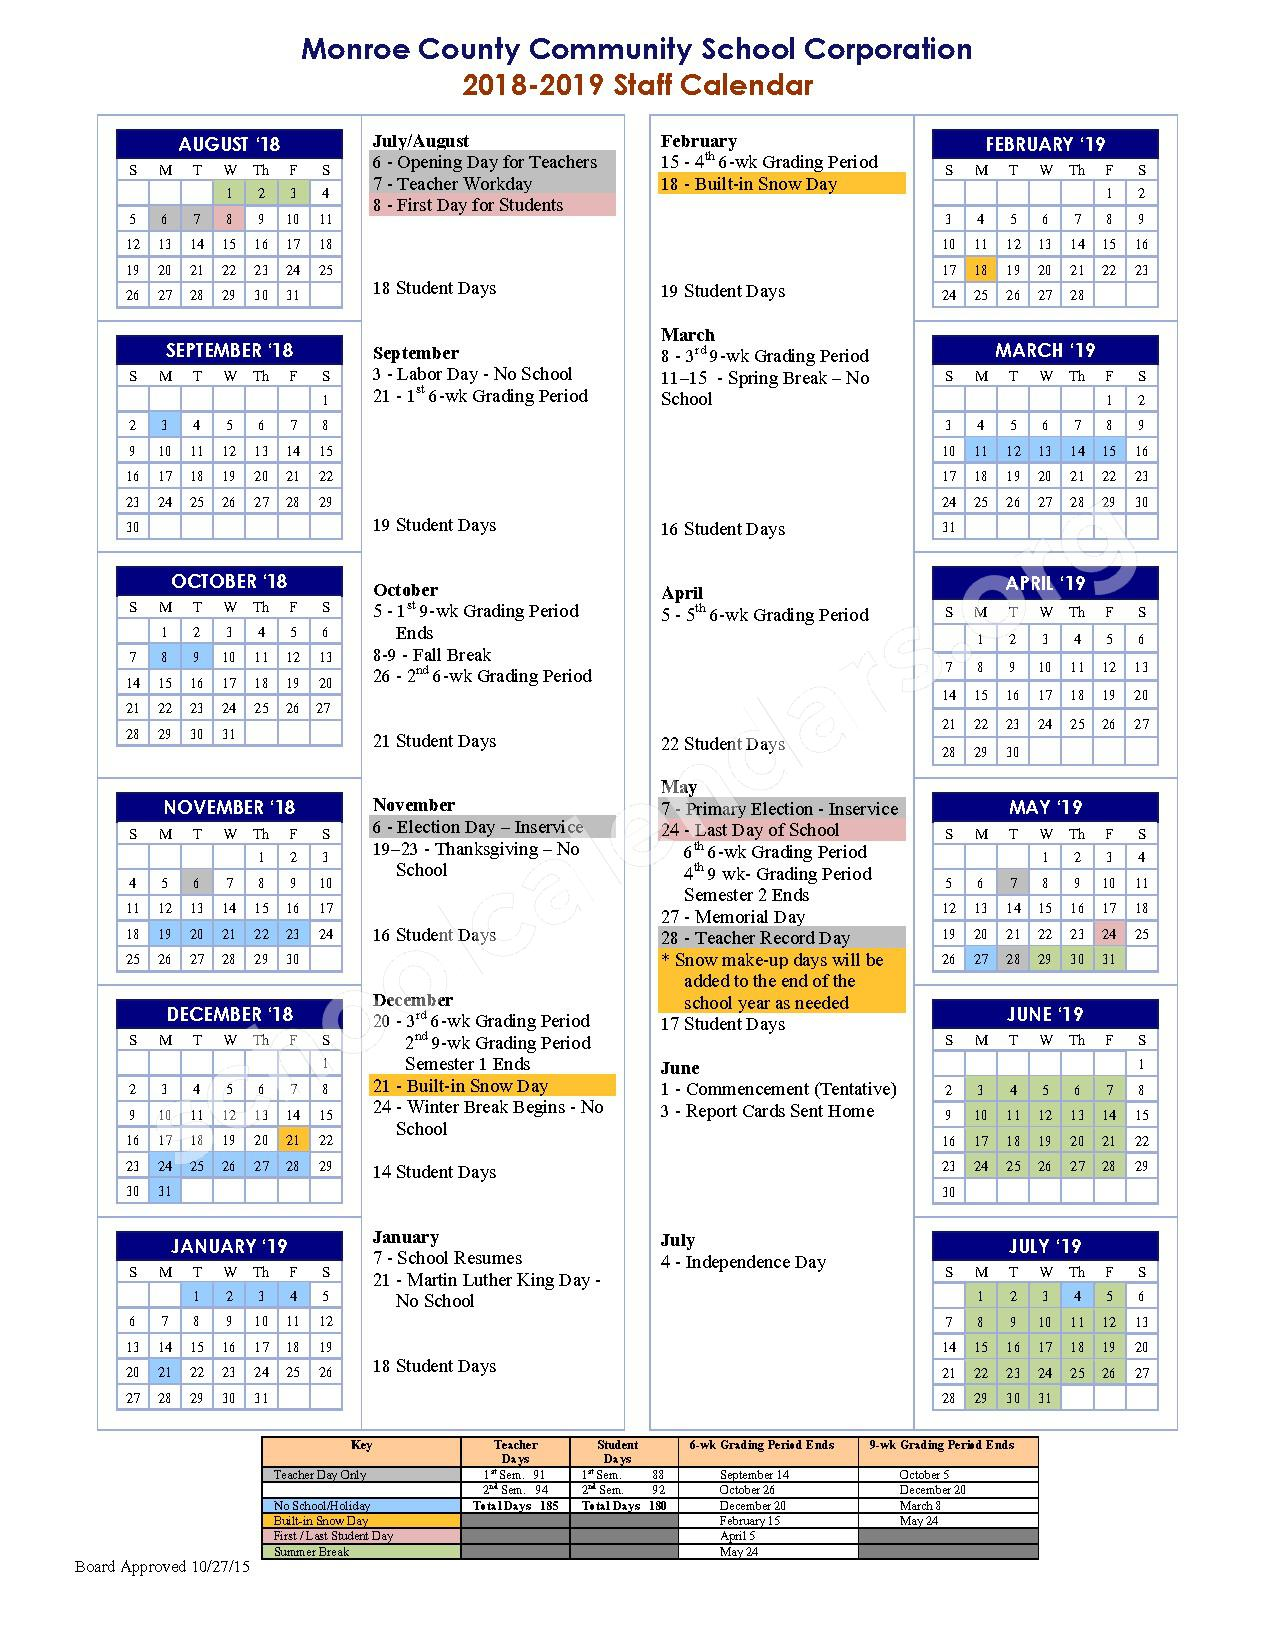 2018 - 2019 School Calendar – Monroe County Community School Corporation – page 1